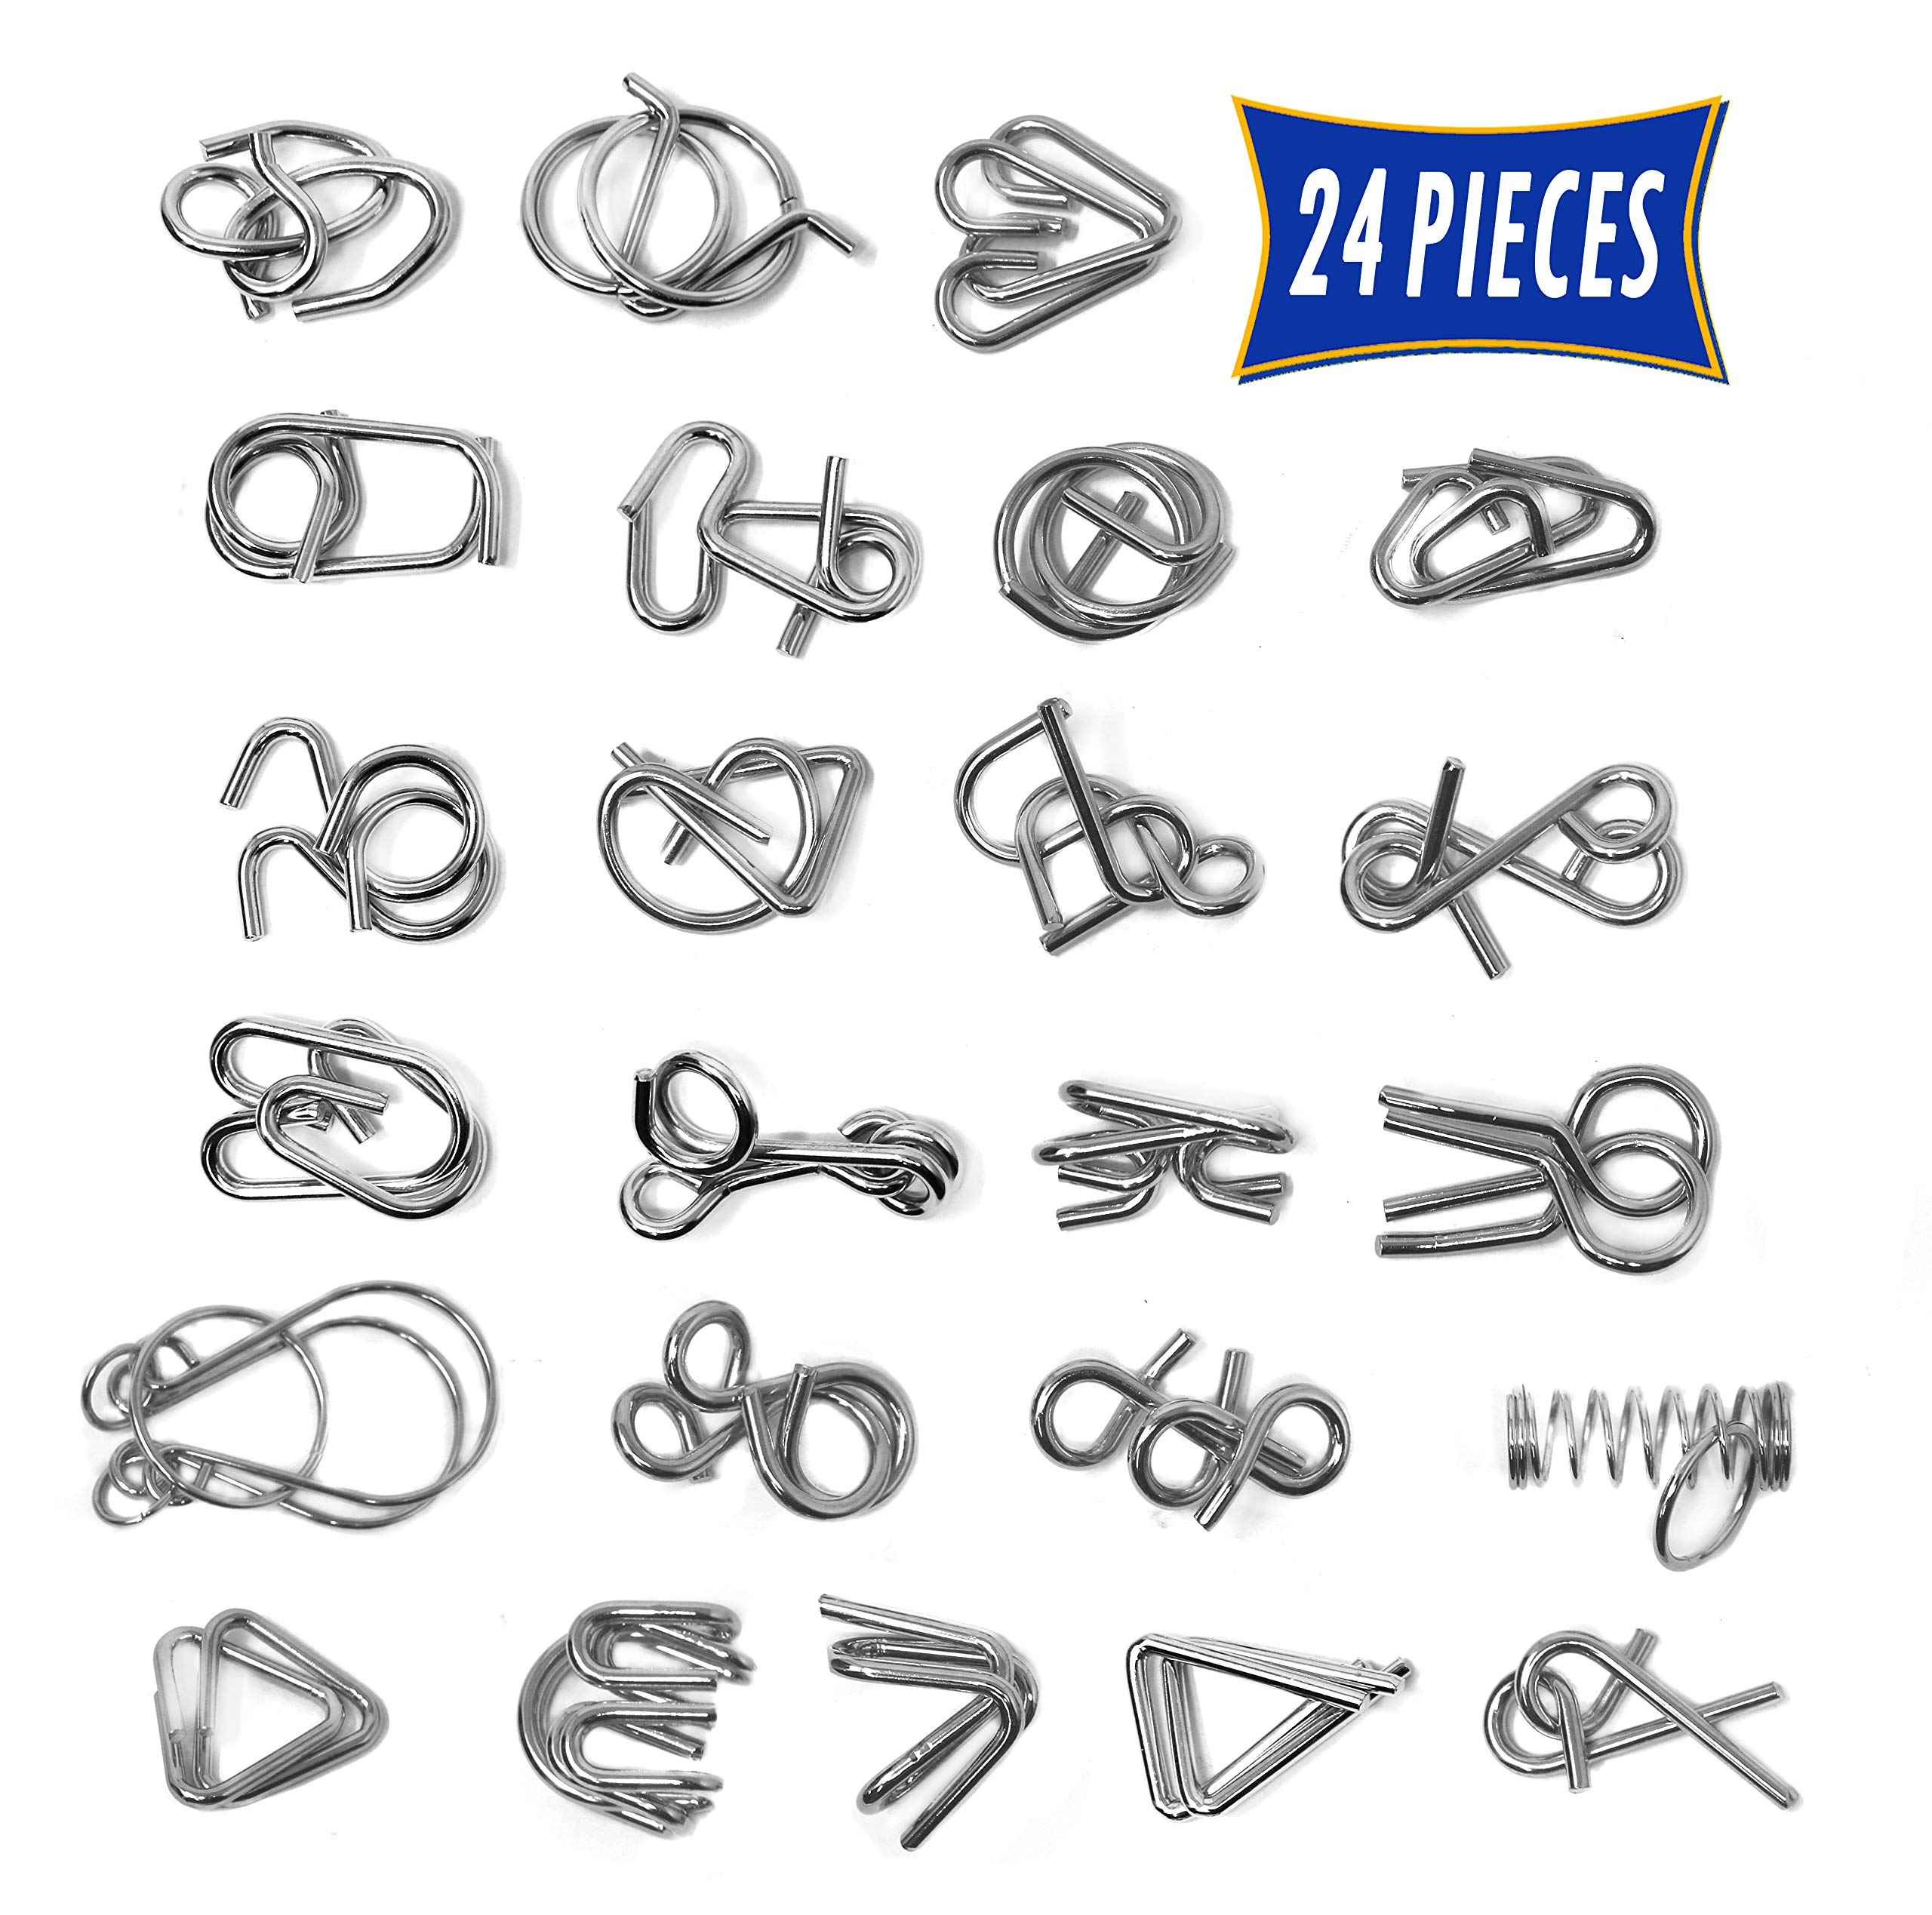 Brain Teasers Metal Wire Puzzle Toys - Assorted Metal Puzzle Toys for Gifts, Party Favors, Prizes, Disentanglement Puzzle Unlock Interlock Toys - IQ Puzzle Brain Teaser Set of 24 by Smart Novelty